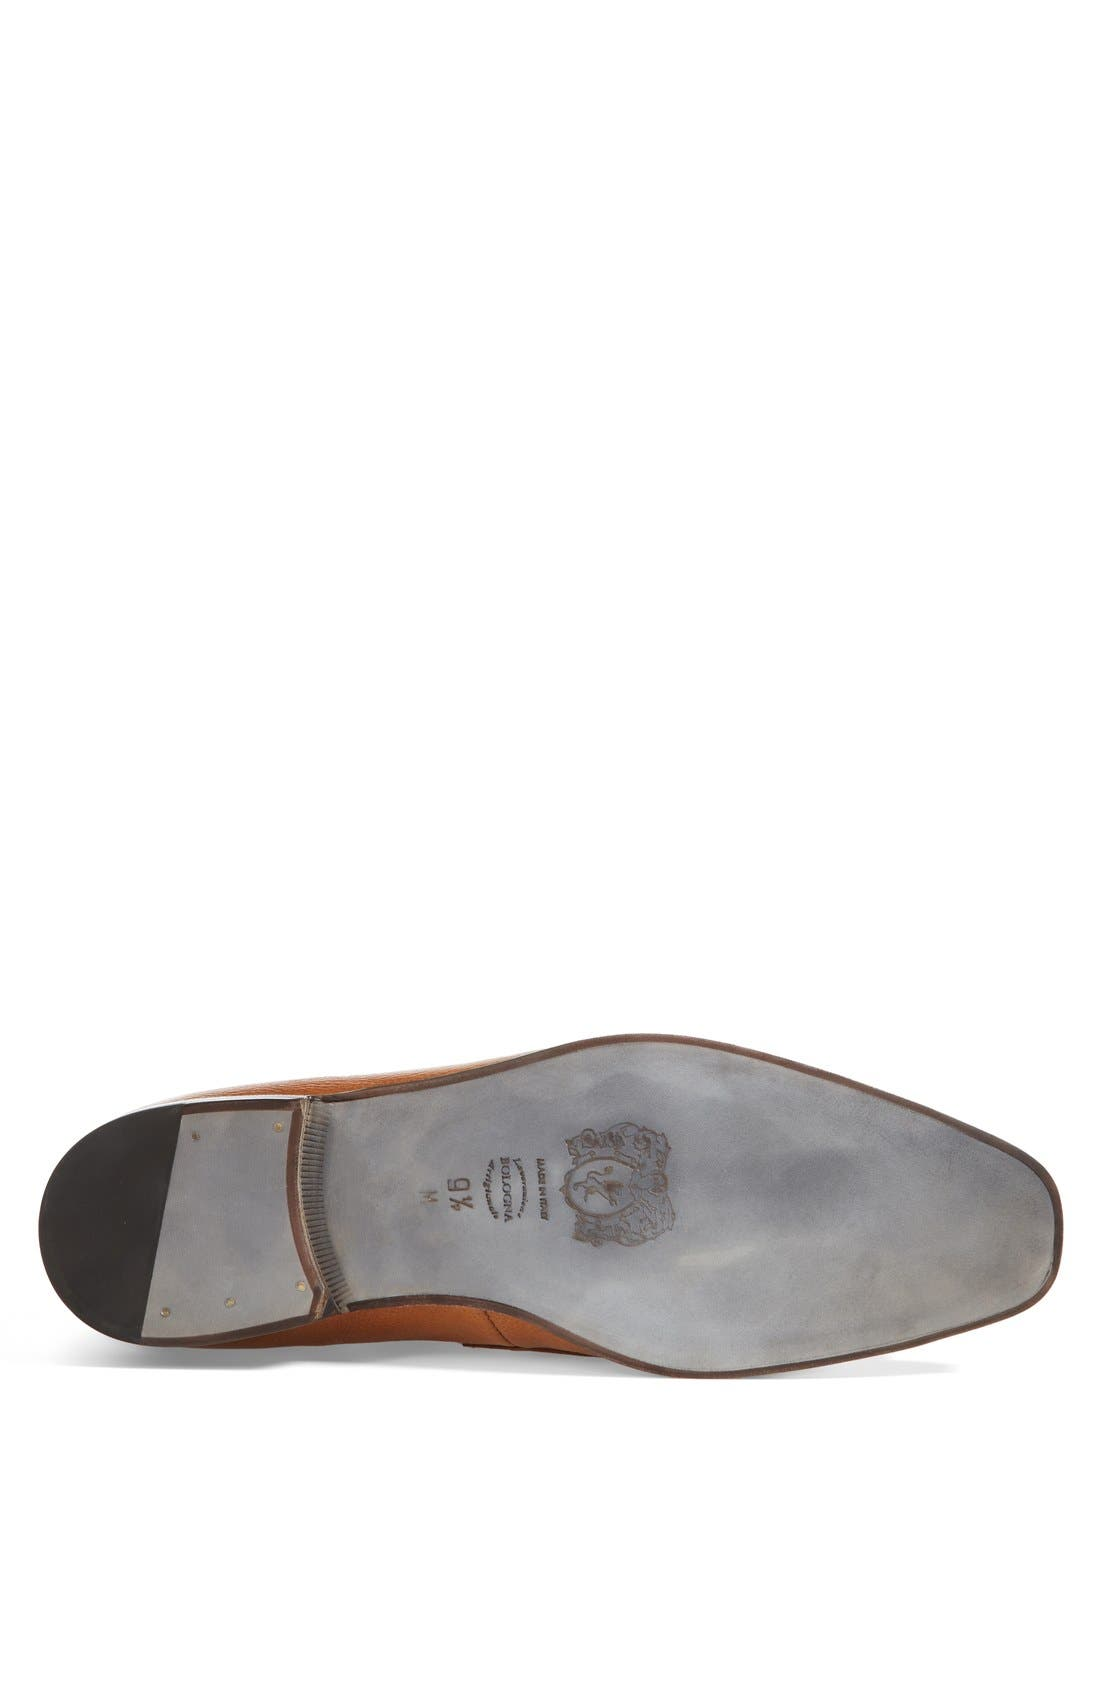 'Mamante II' Pebbled Leather Loafer,                             Alternate thumbnail 4, color,                             Light Brown